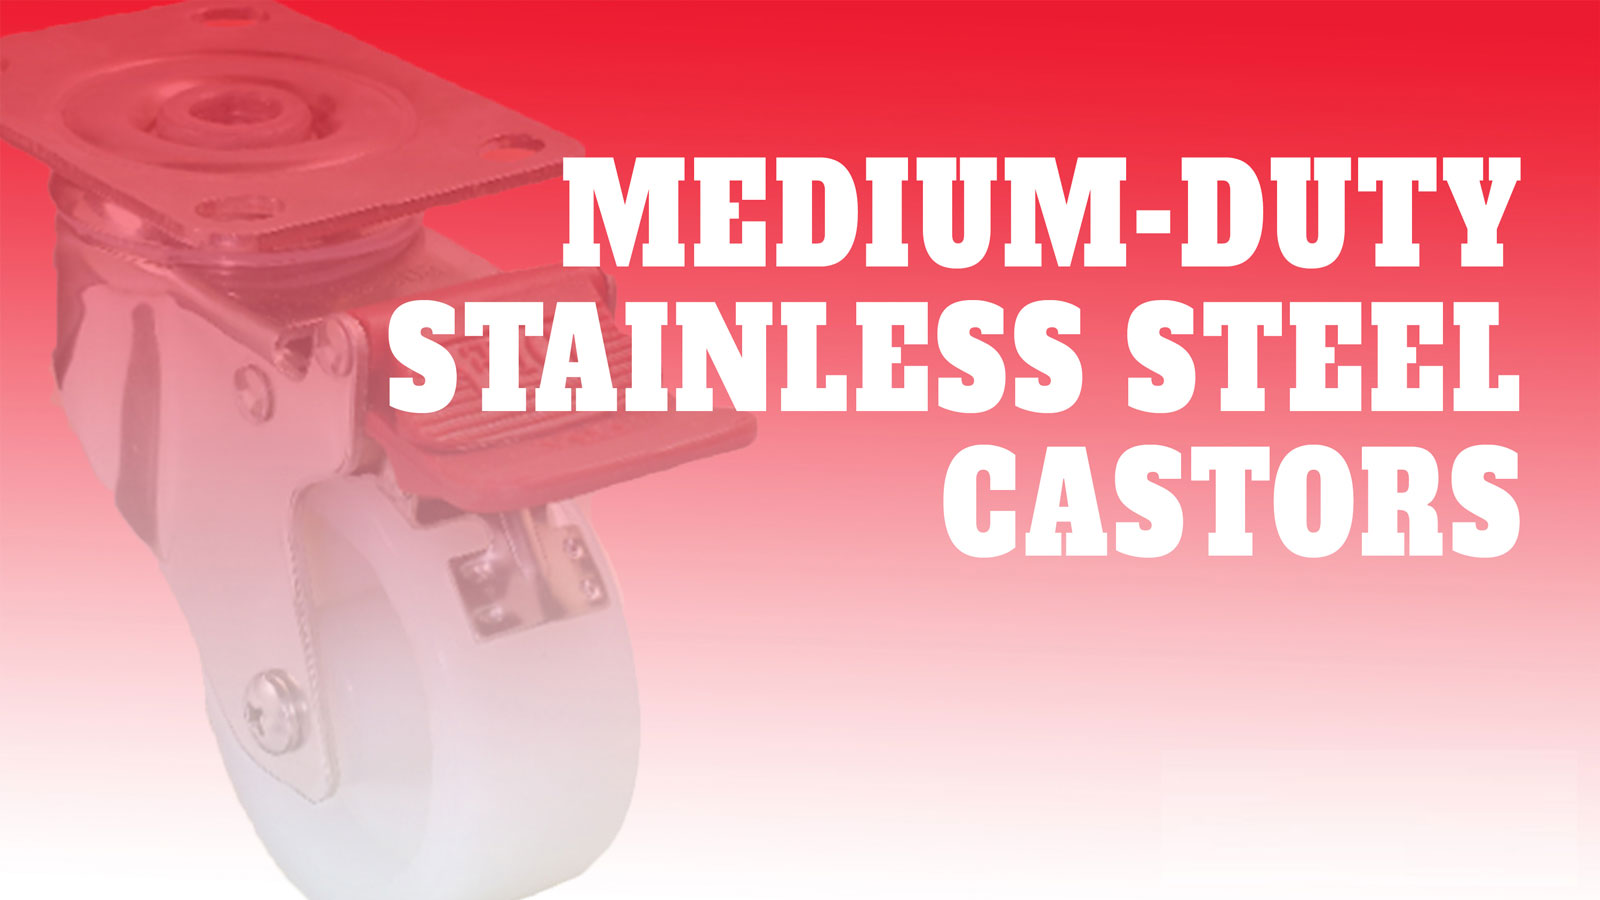 Castor-Medium-Duty-Stainless-Steel